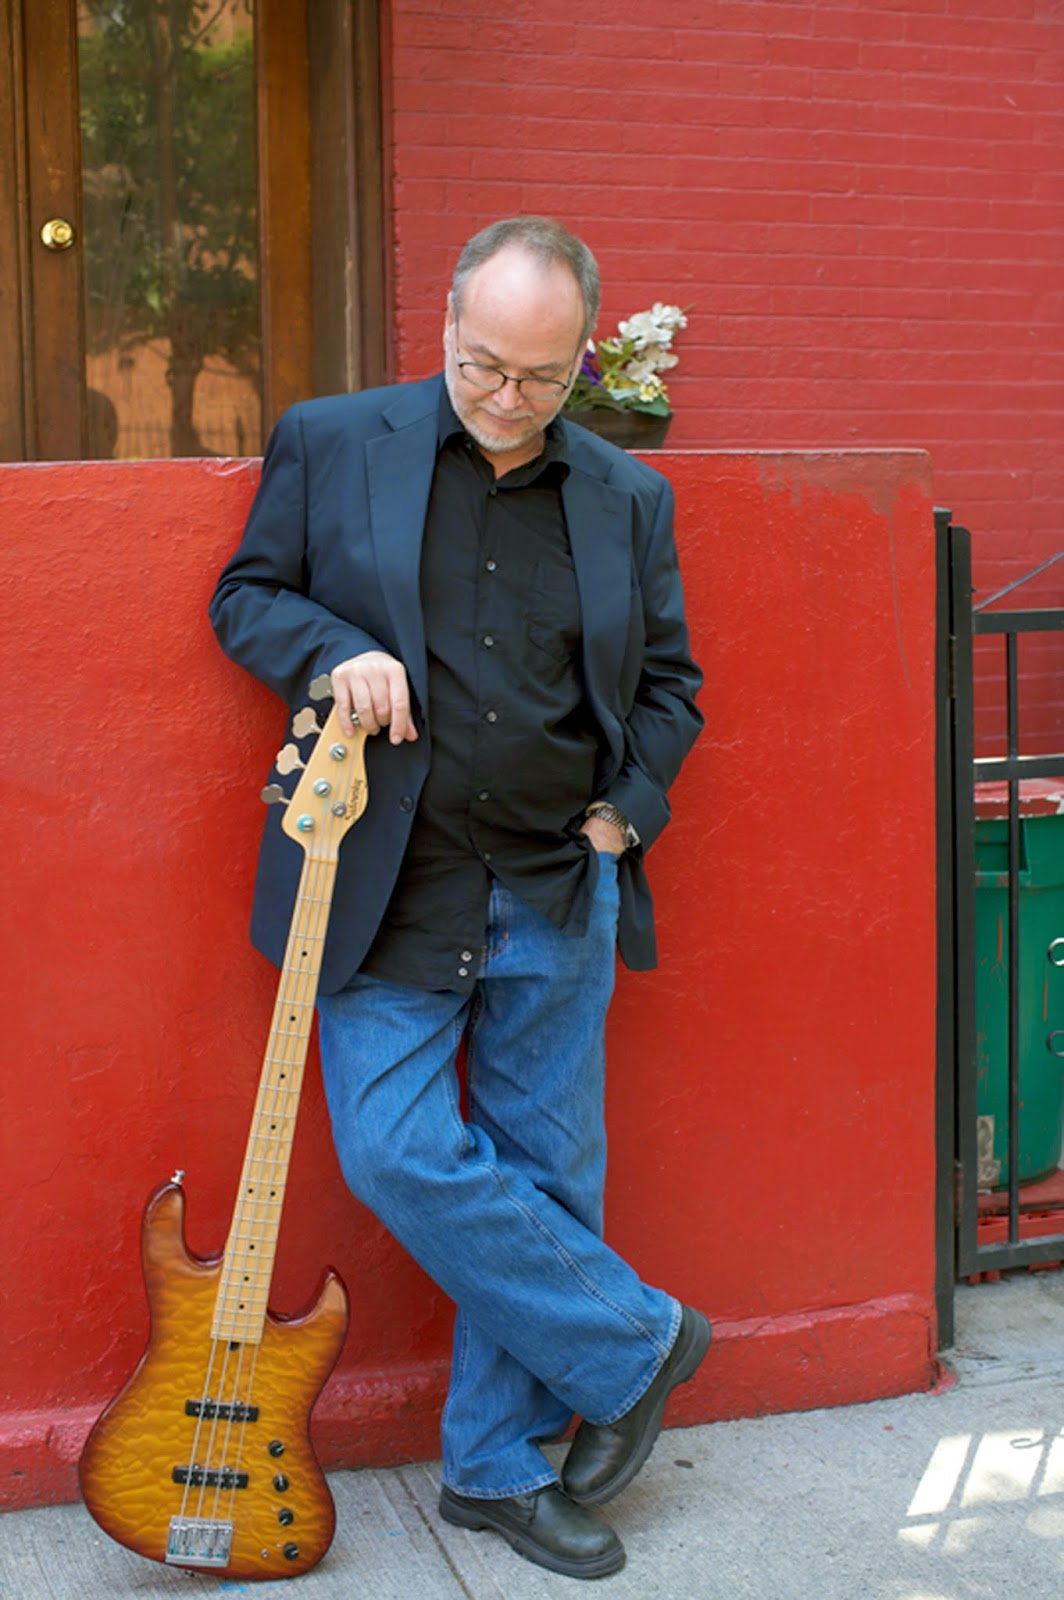 walterbecker.com